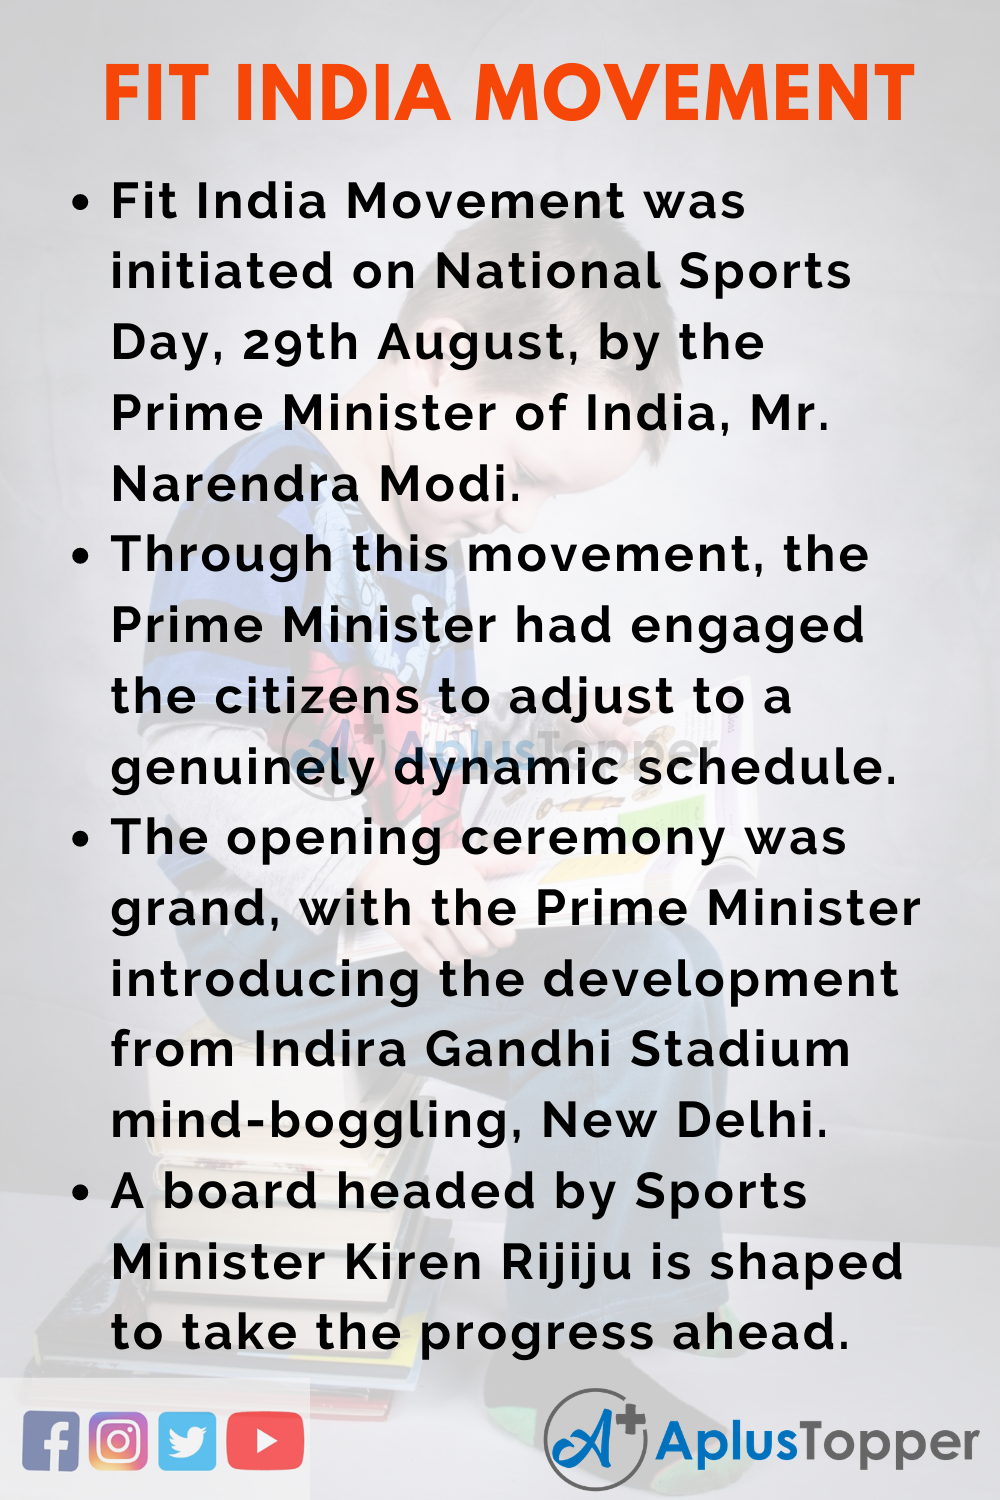 10 Lines on Fit India Movement for Higher Class Students